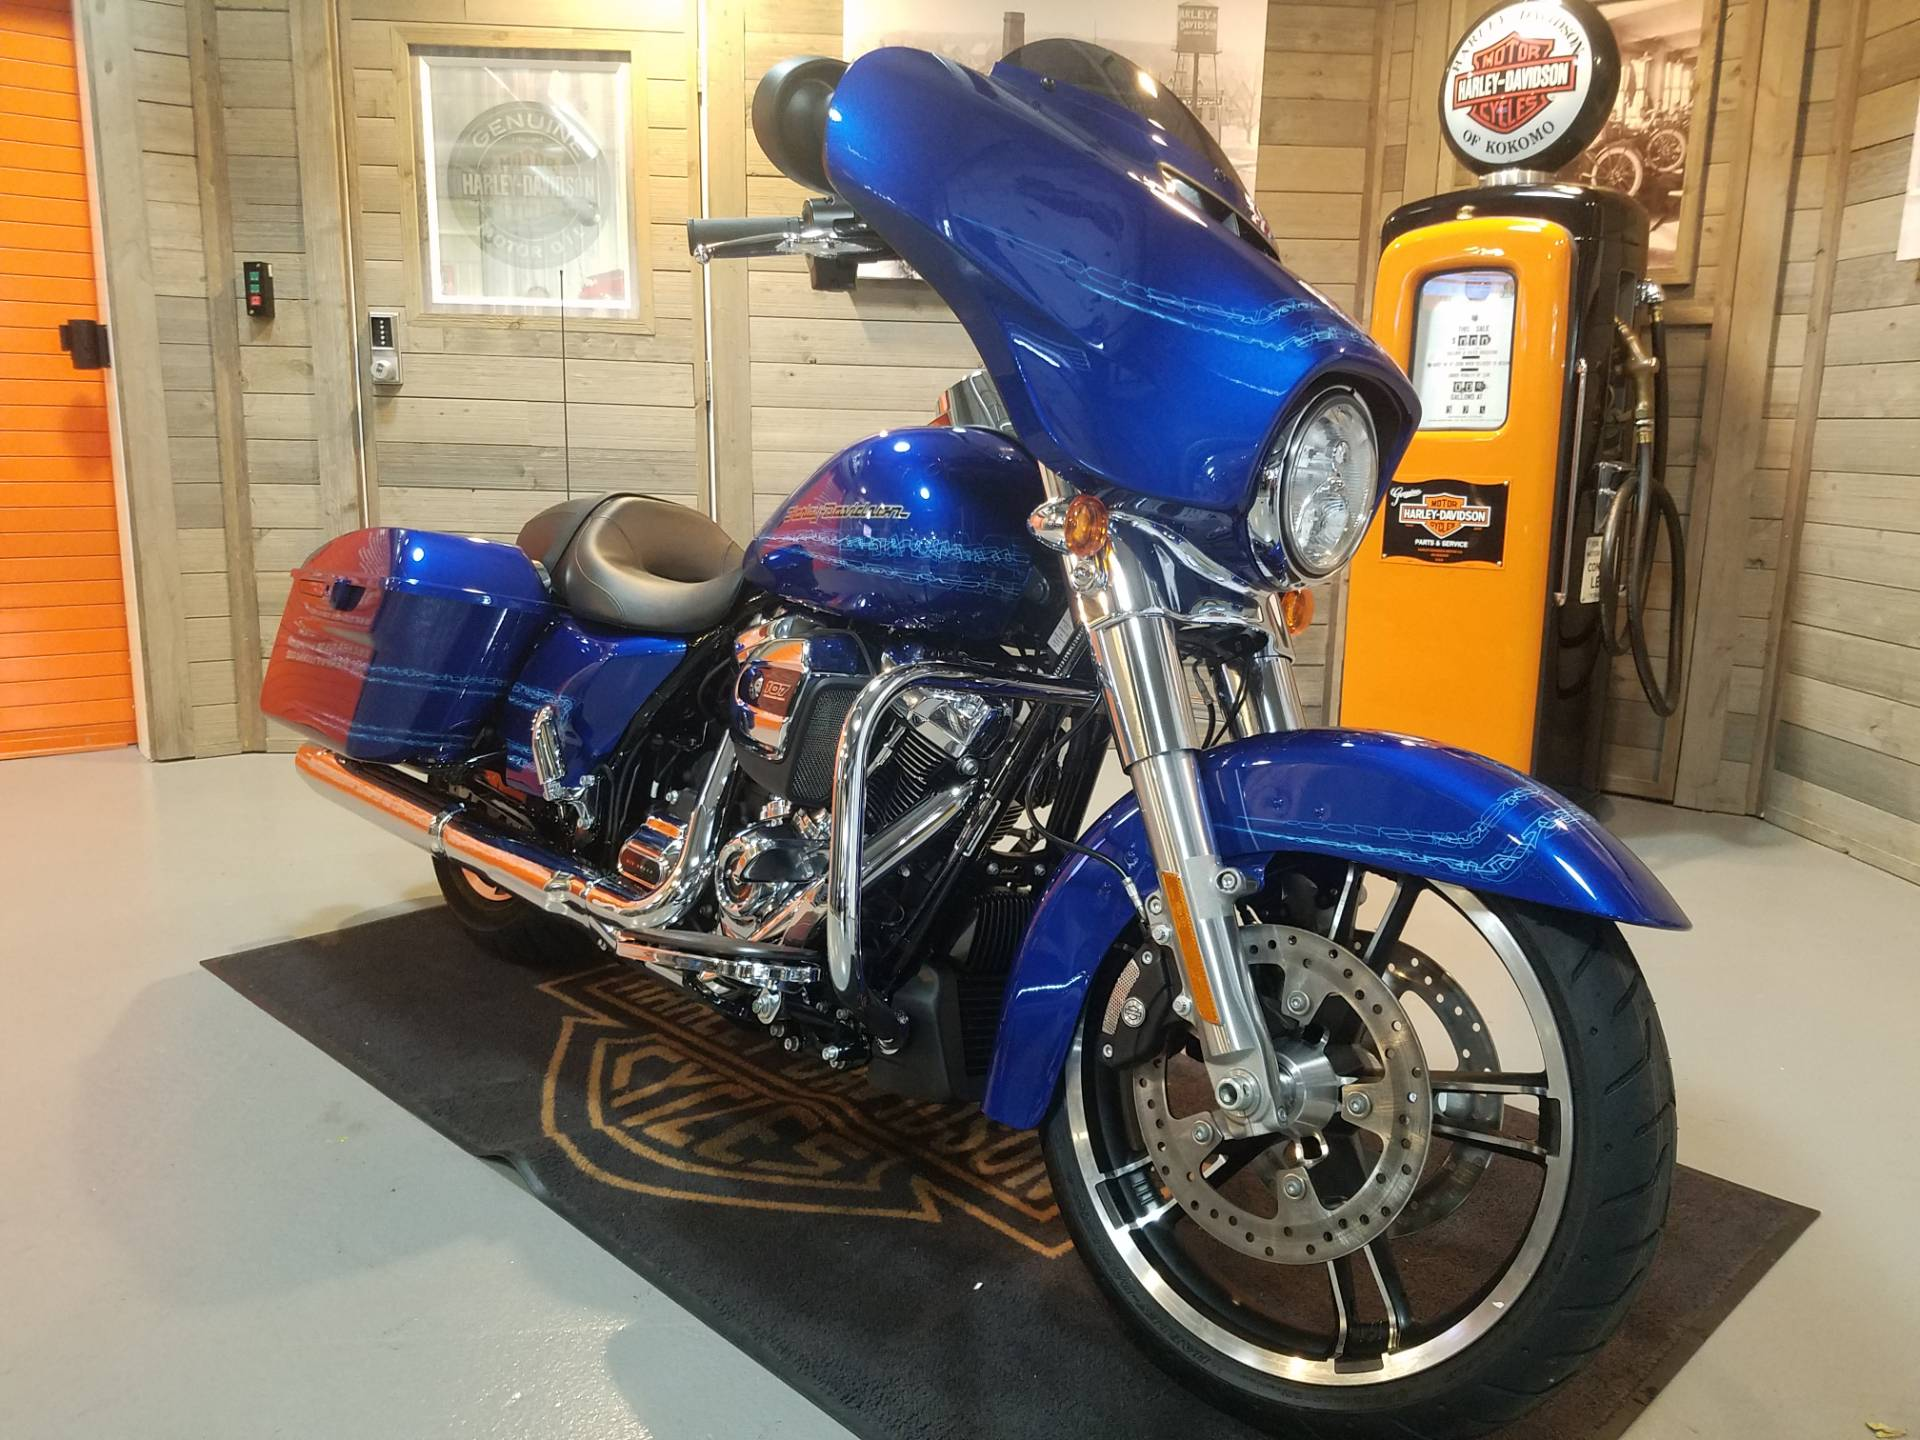 2019 Harley-Davidson Street Glide FLHX in Kokomo, Indiana - Photo 2